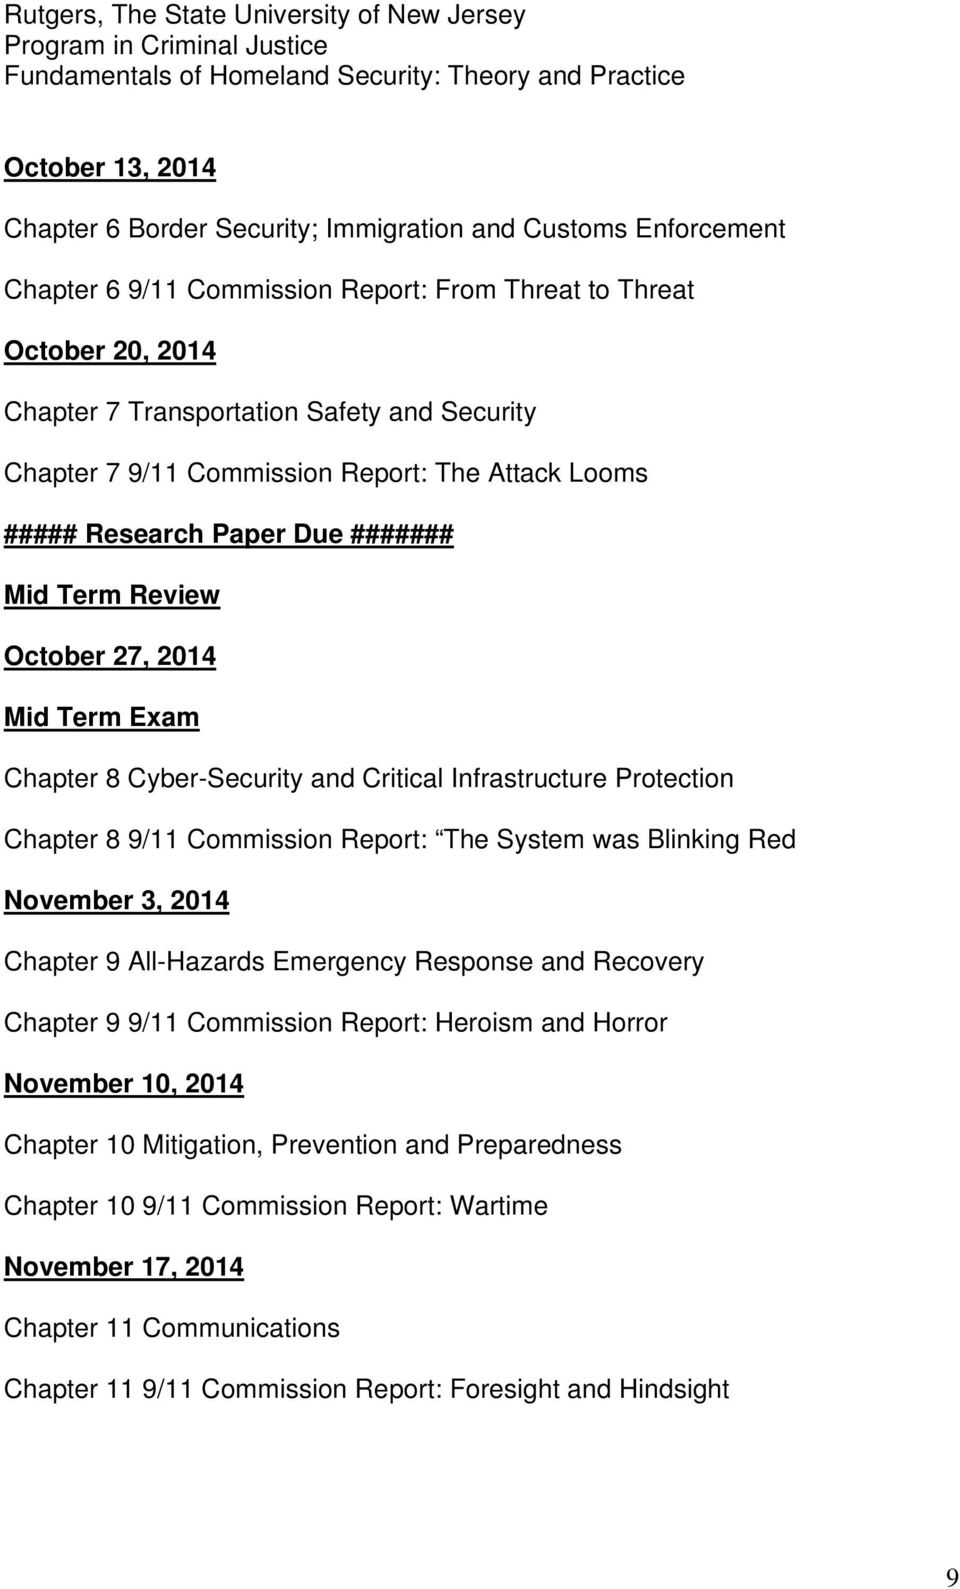 Chapter 8 9/11 Commission Report: The System was Blinking Red November 3, 2014 Chapter 9 All-Hazards Emergency Response Recovery Chapter 9 9/11 Commission Report: Heroism Horror November 10,